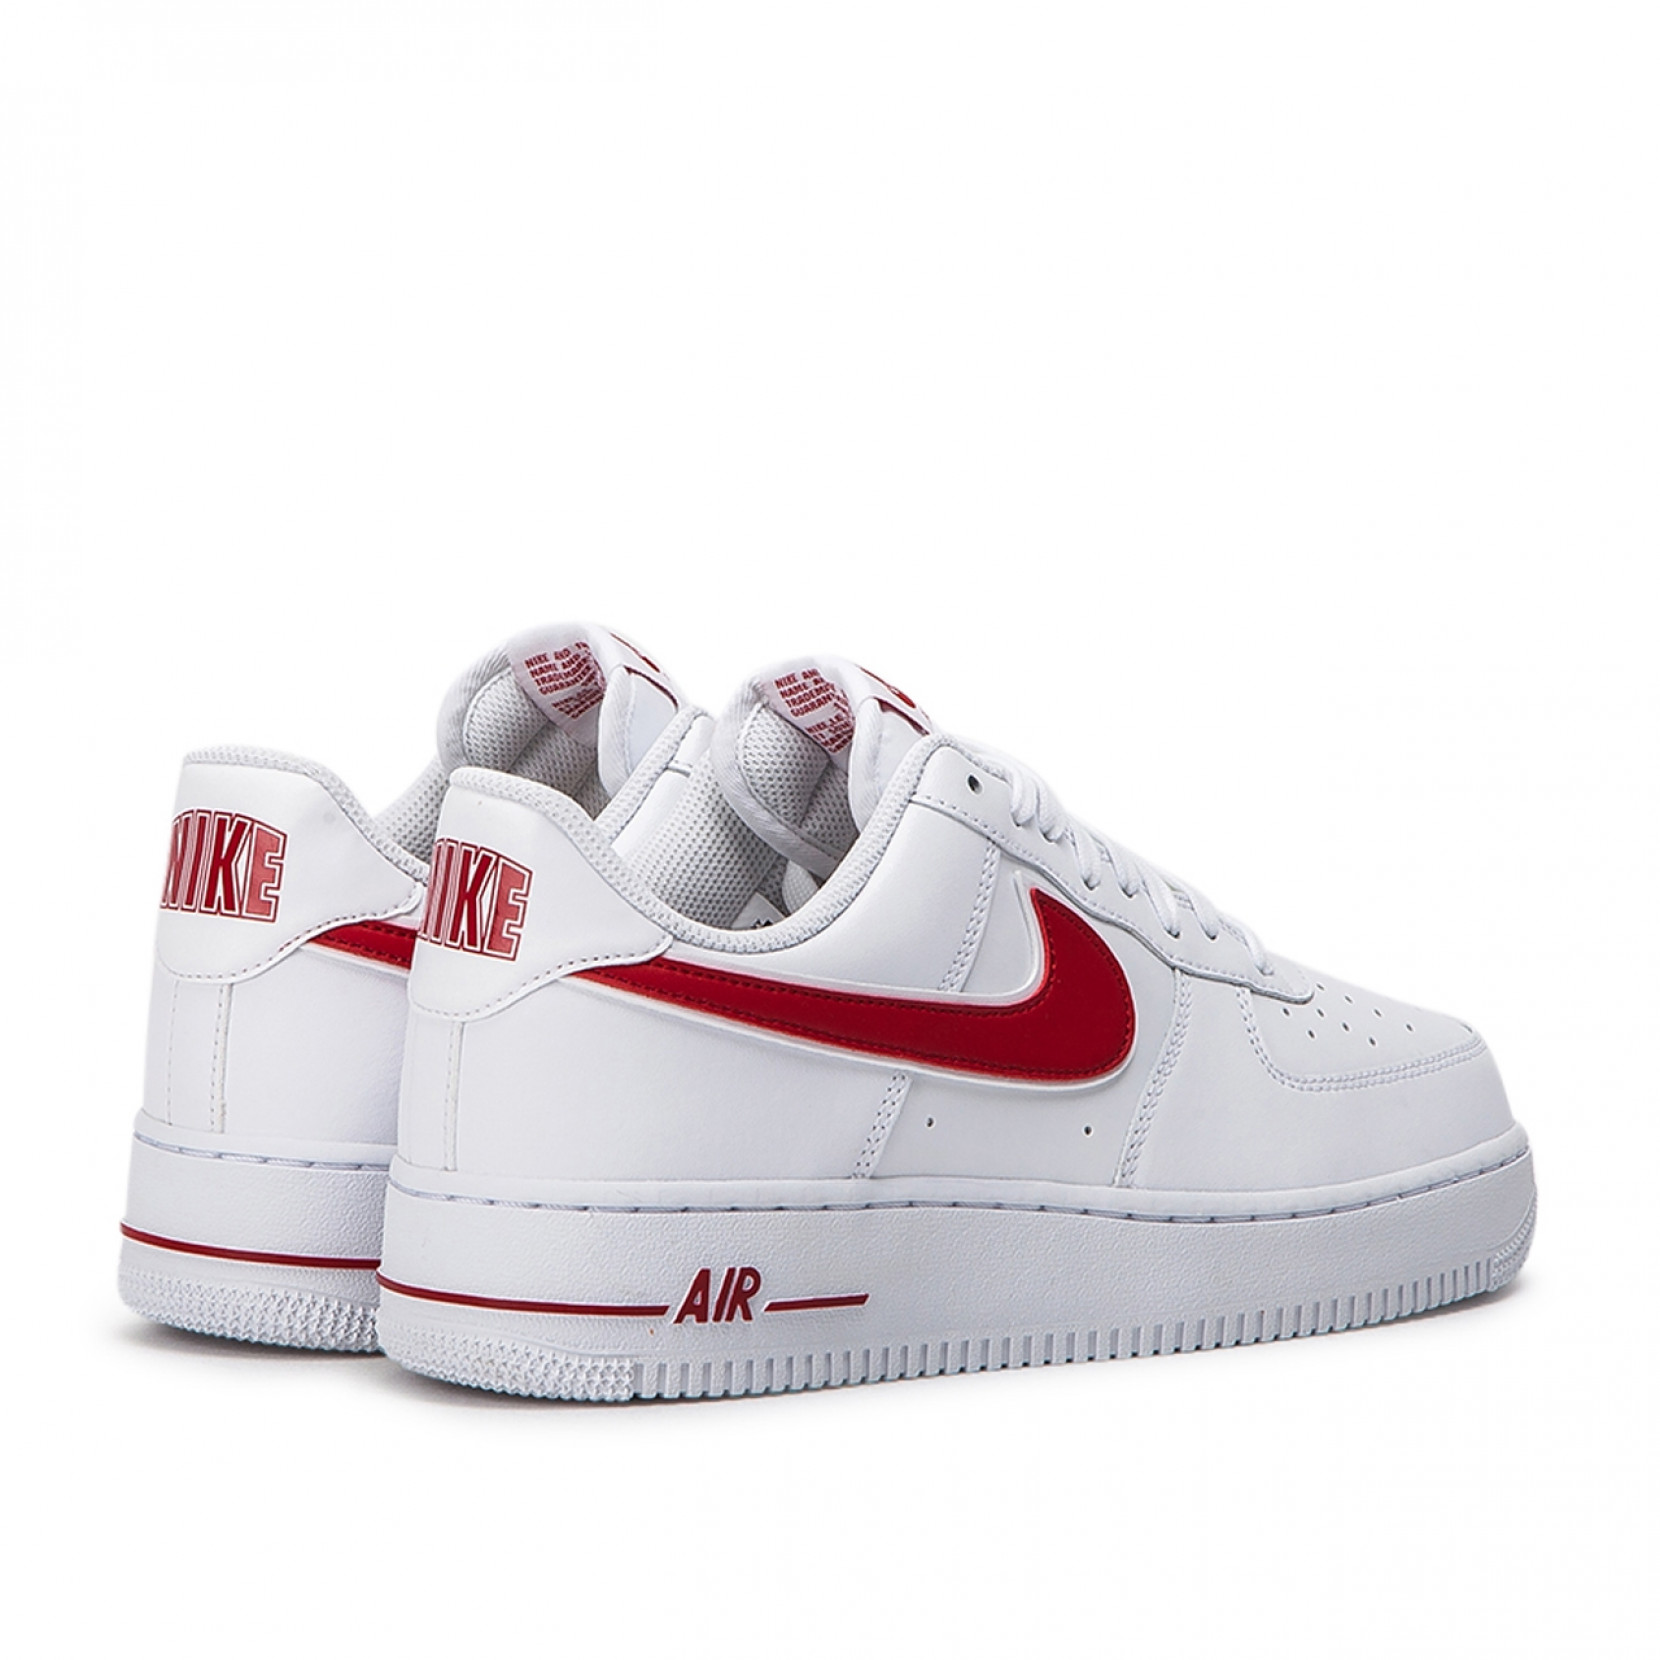 Nike Air Force 1 07 3 White Red